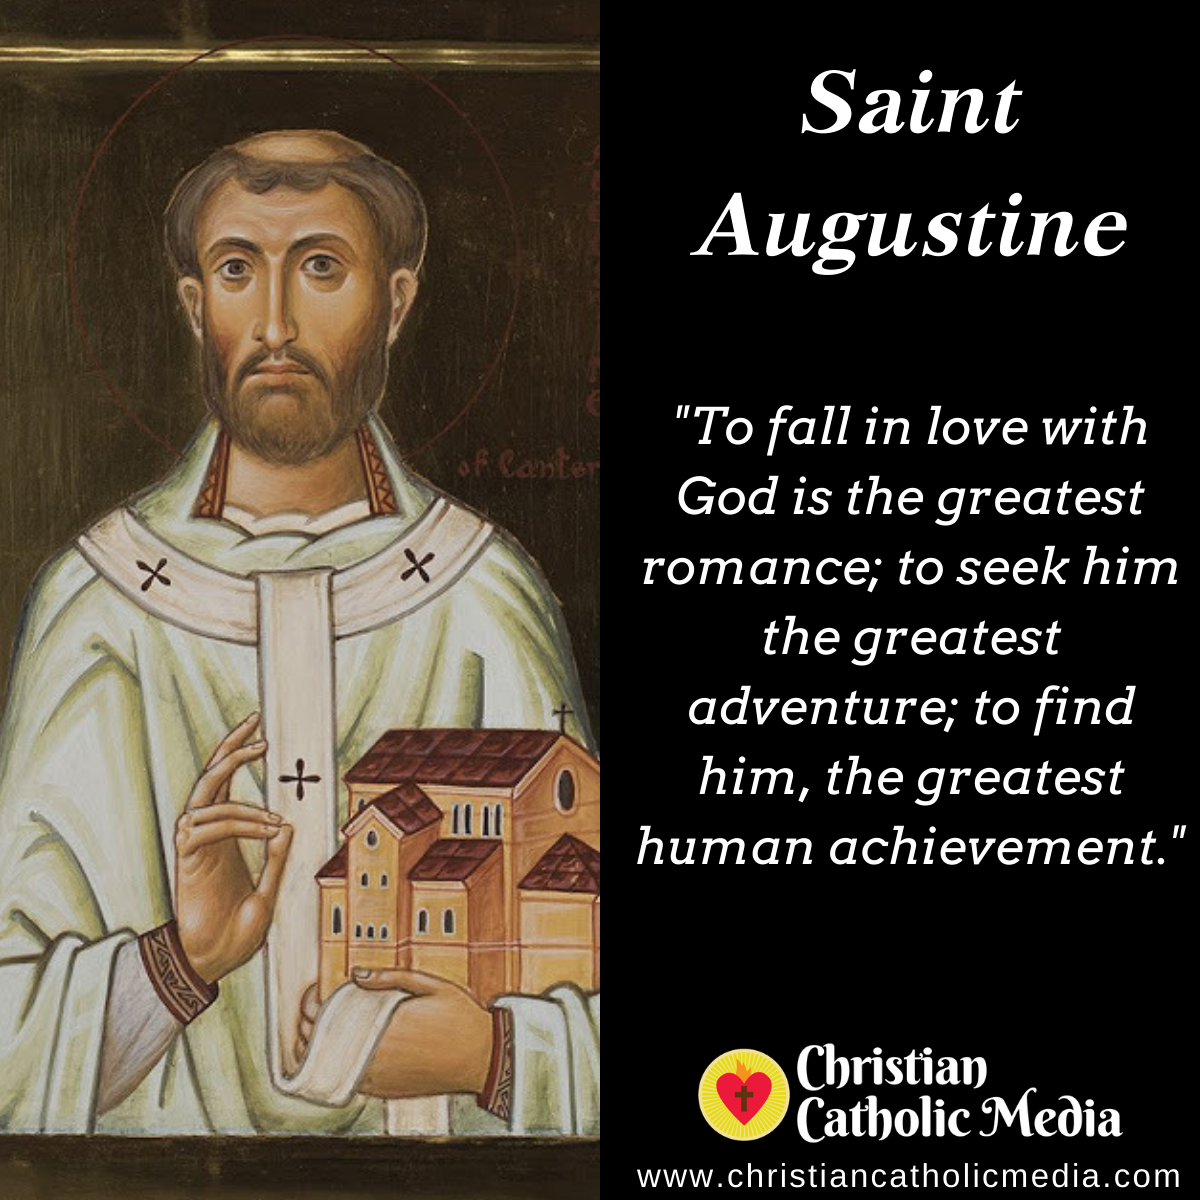 St. Augustine - Wednesday May 27, 2020